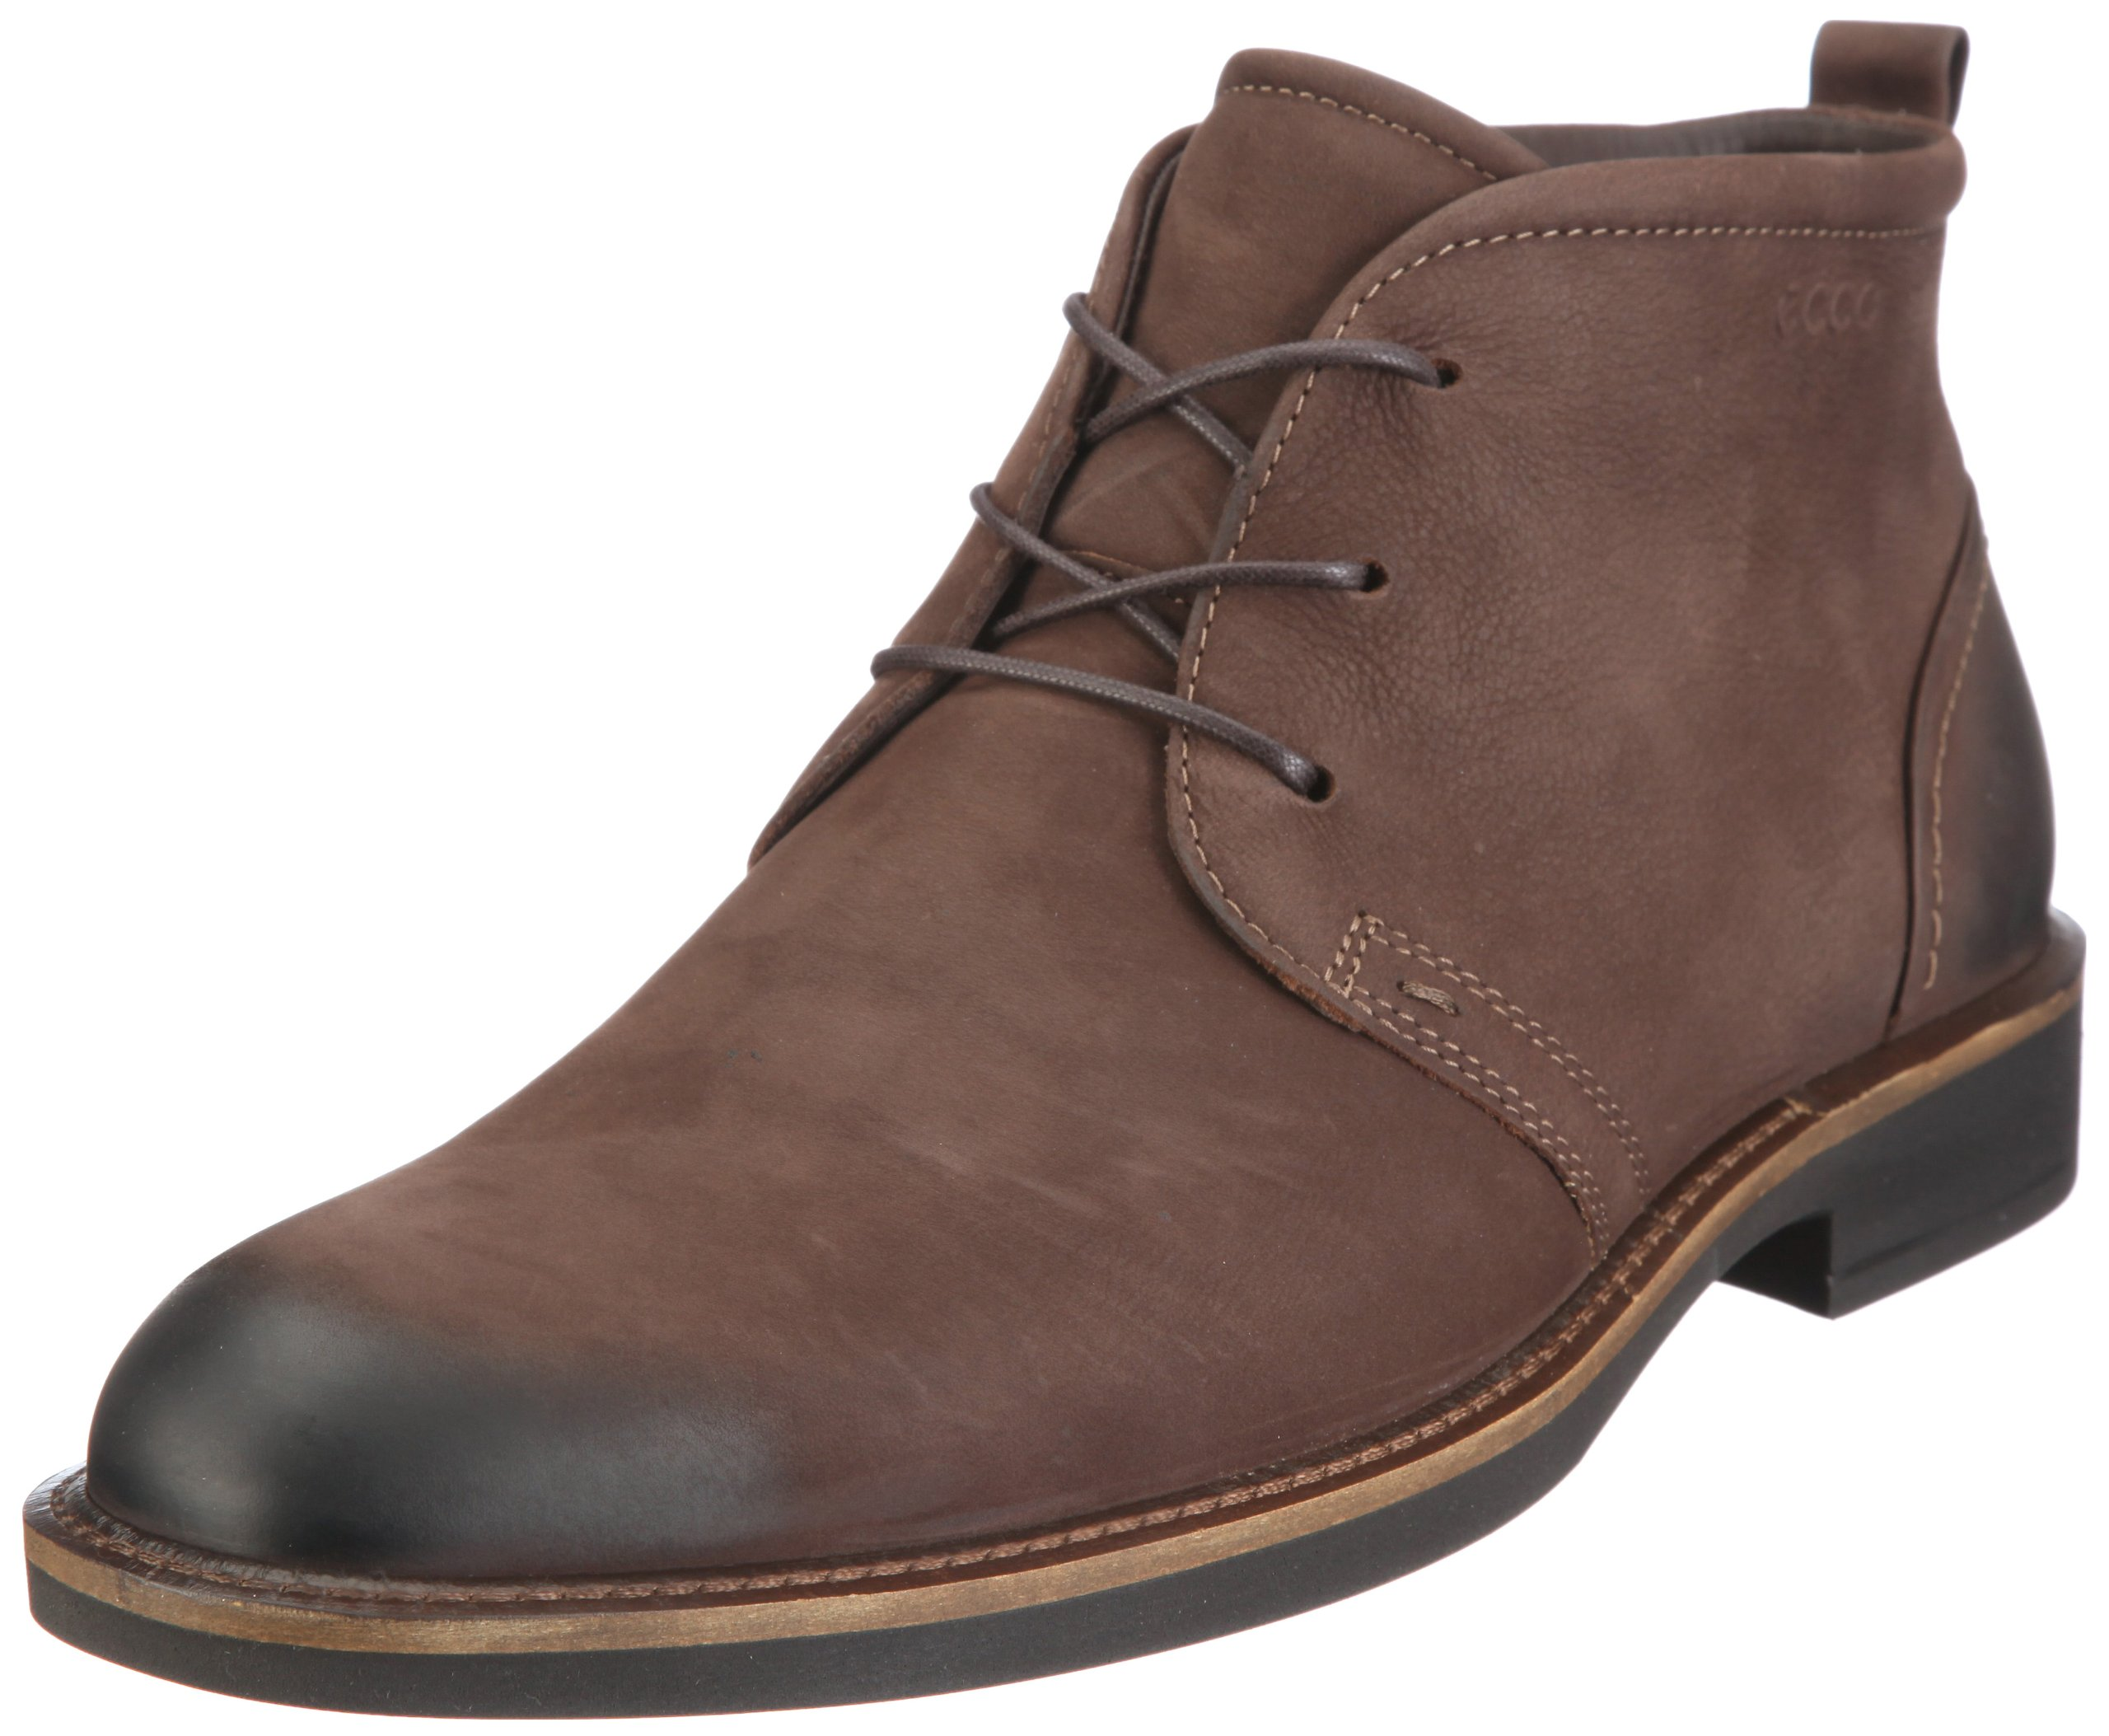 ECCO Men's Biarritz Chukka Boot,Coffee,45 EU/11-11.5 M US